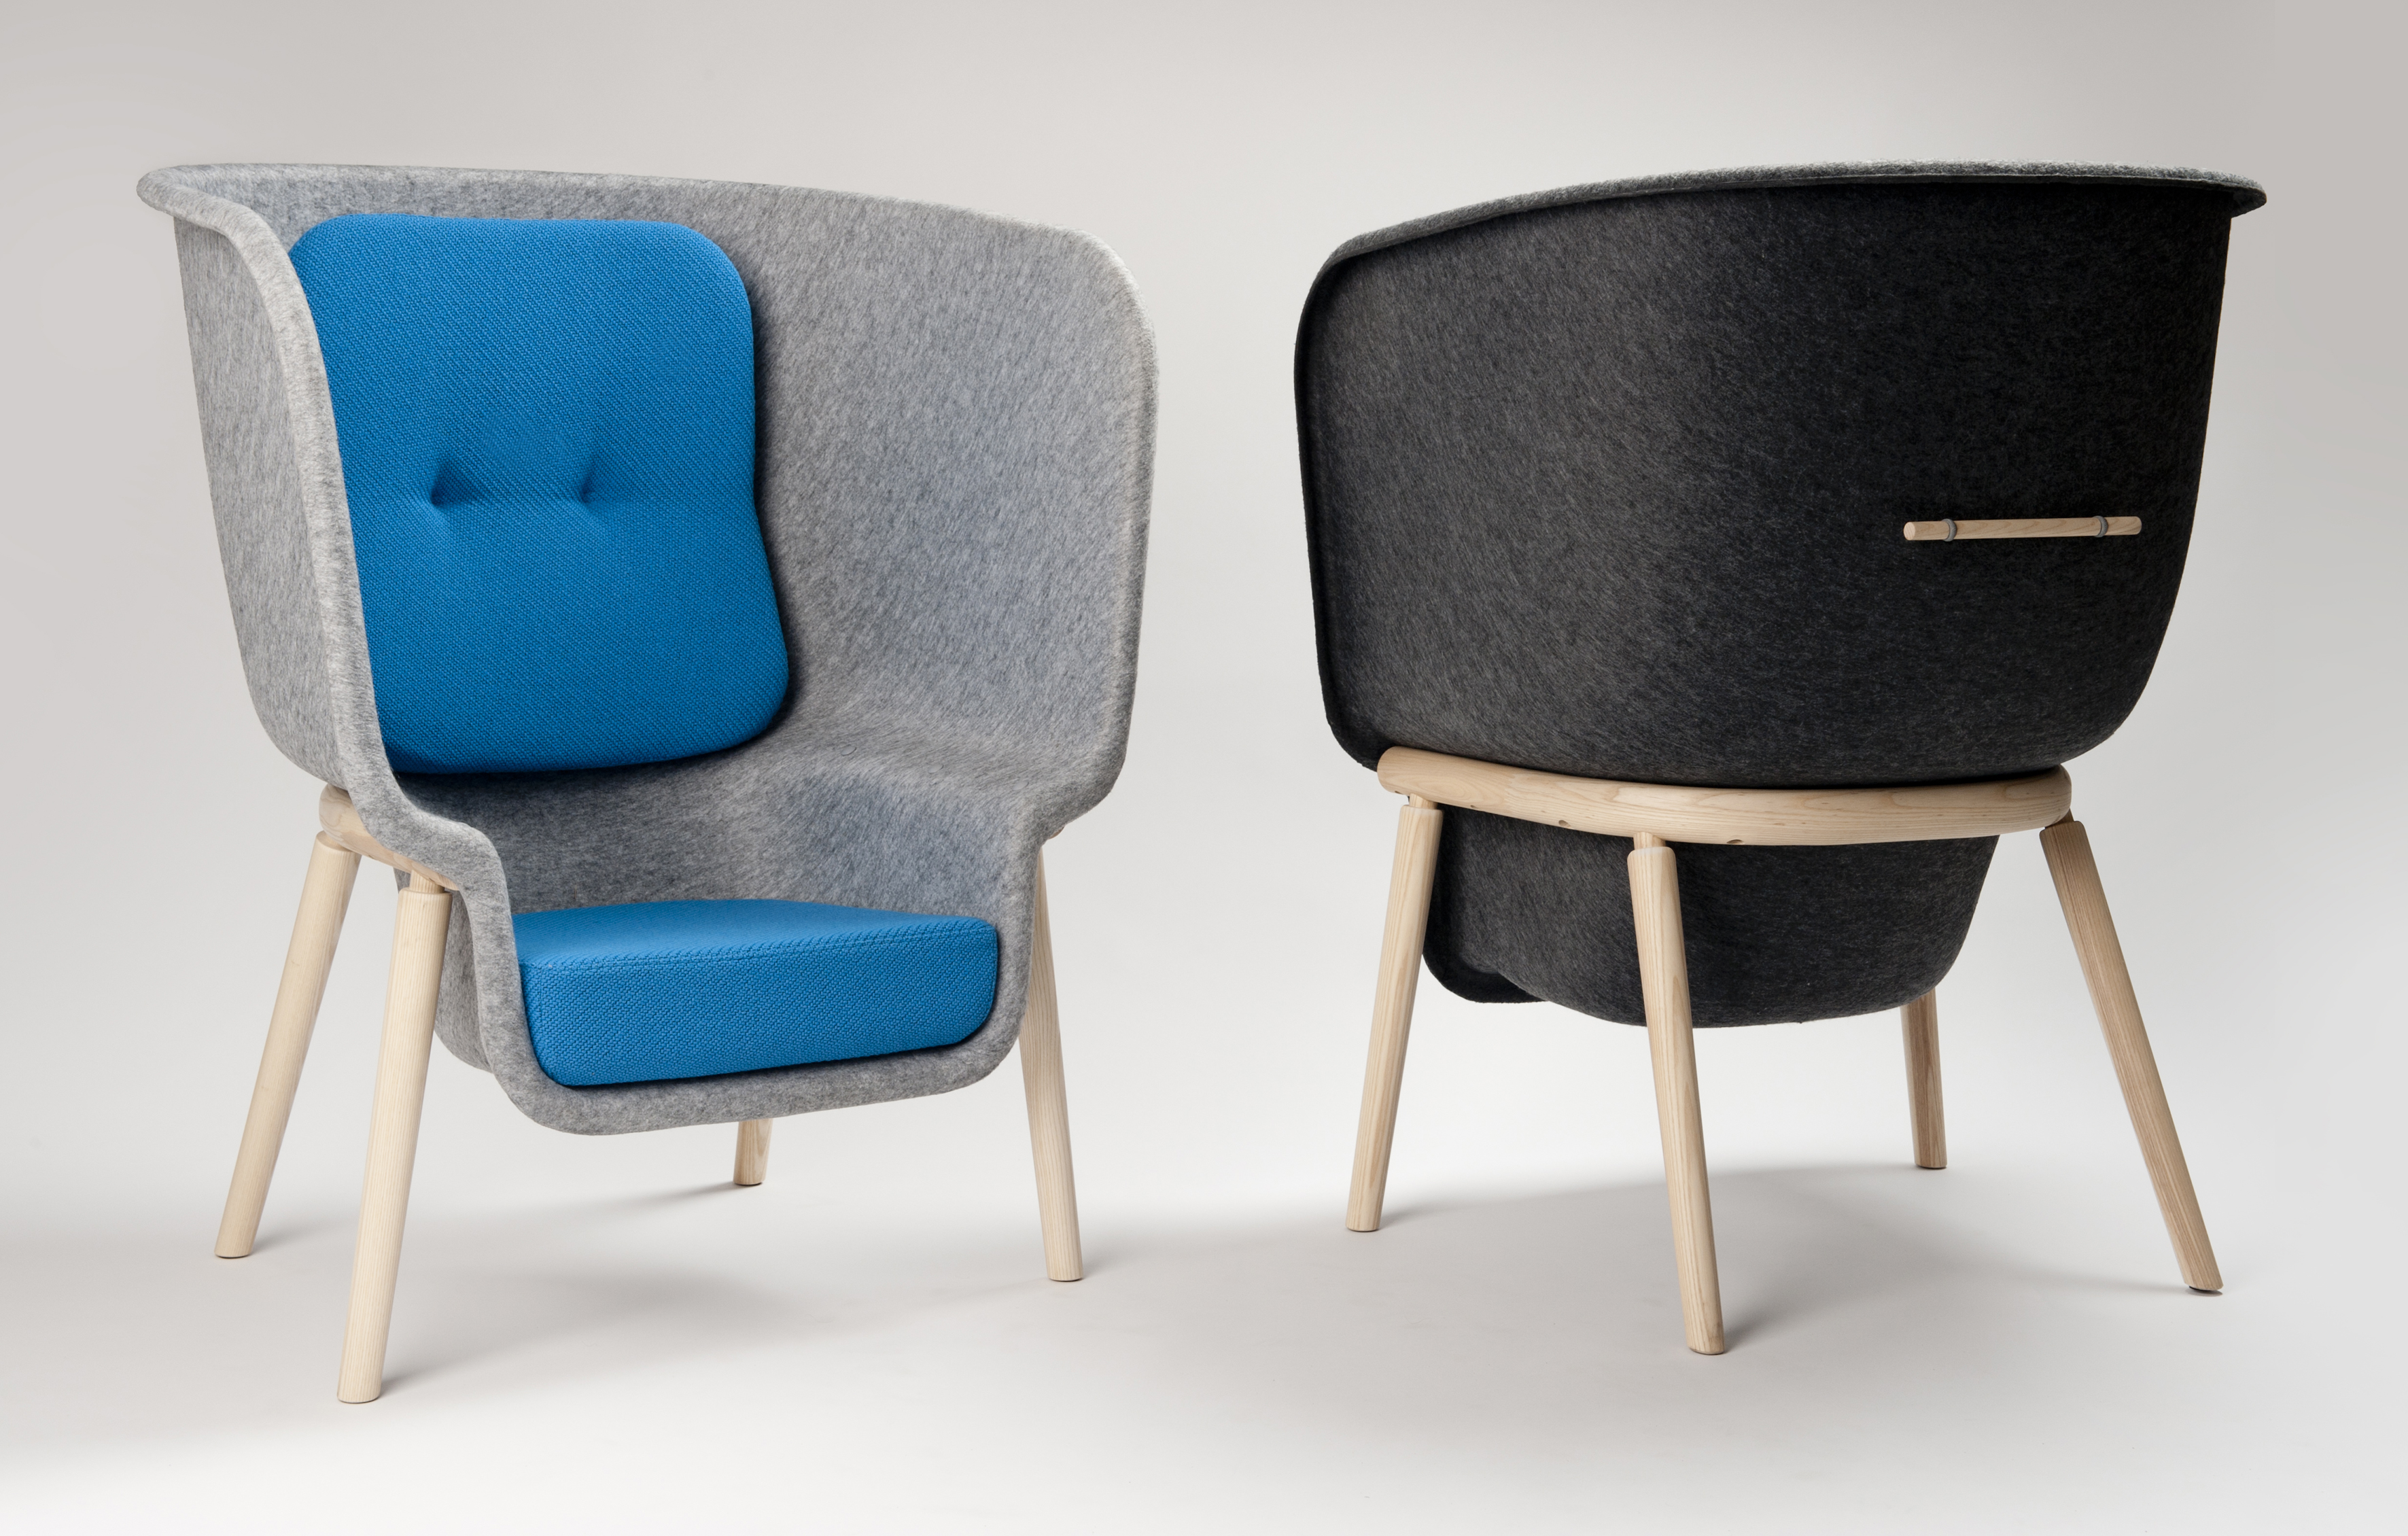 Behind the Design Process The Pod Chair From Benjamin Hubert